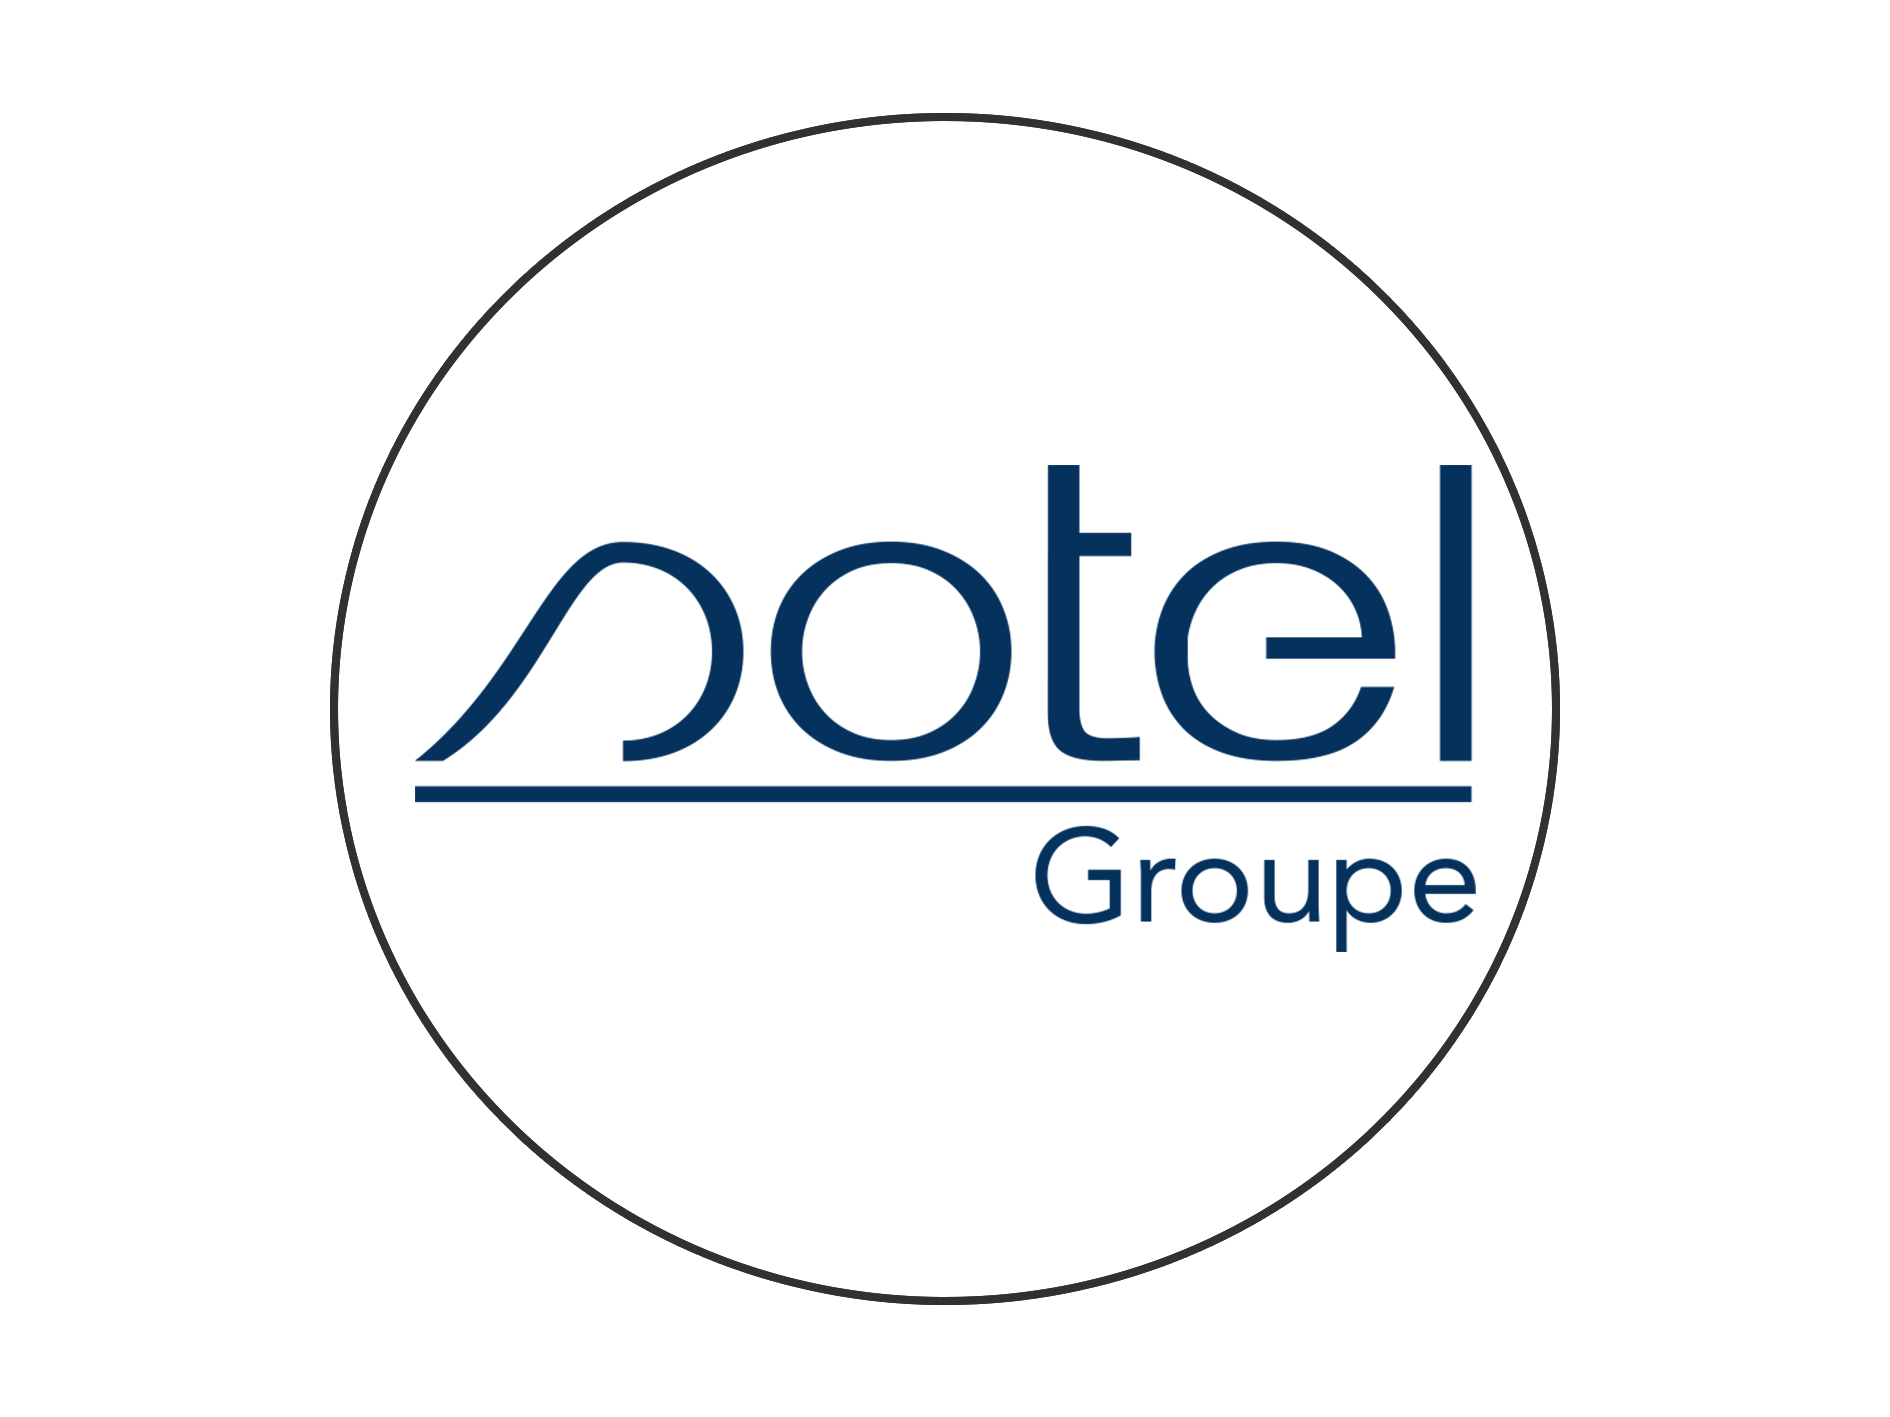 Groupe Sotel